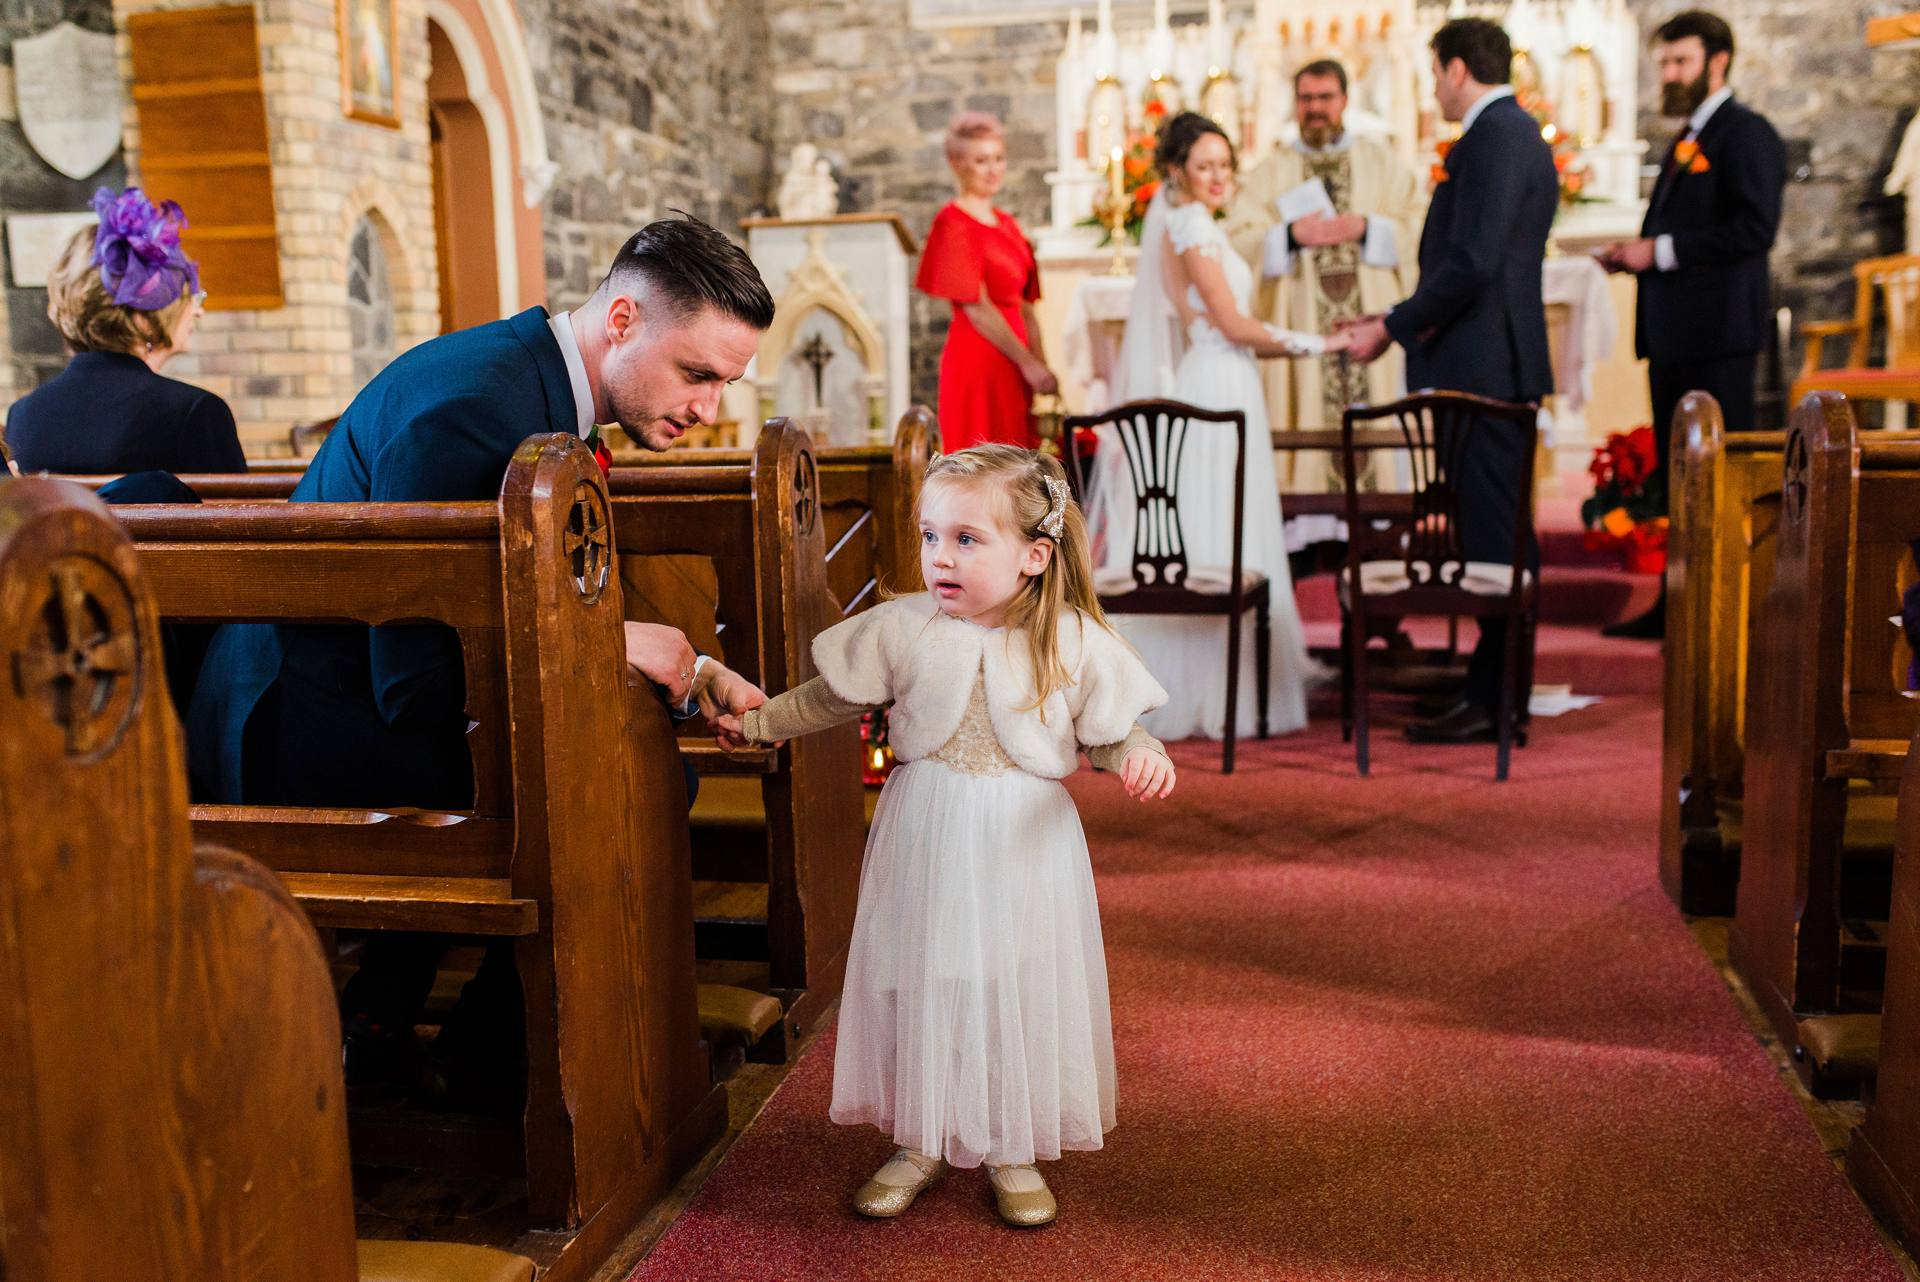 Flower girl running down the aisle in a church